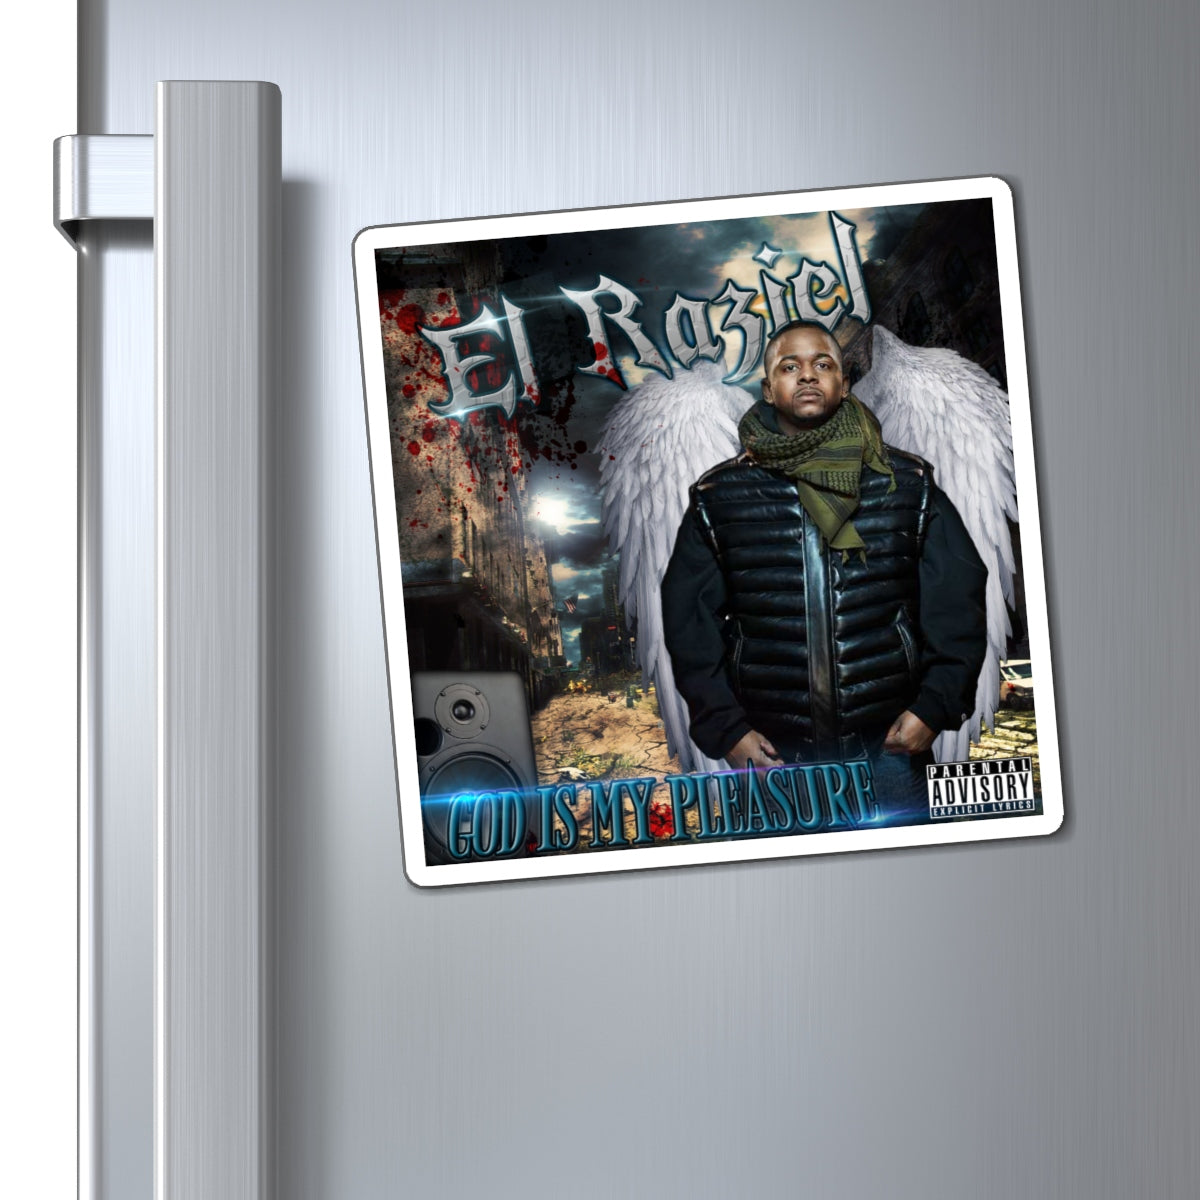 El Raziel God Is My Pleasure - HellRazah Music Inc. Limited Edition Collectible Magnet